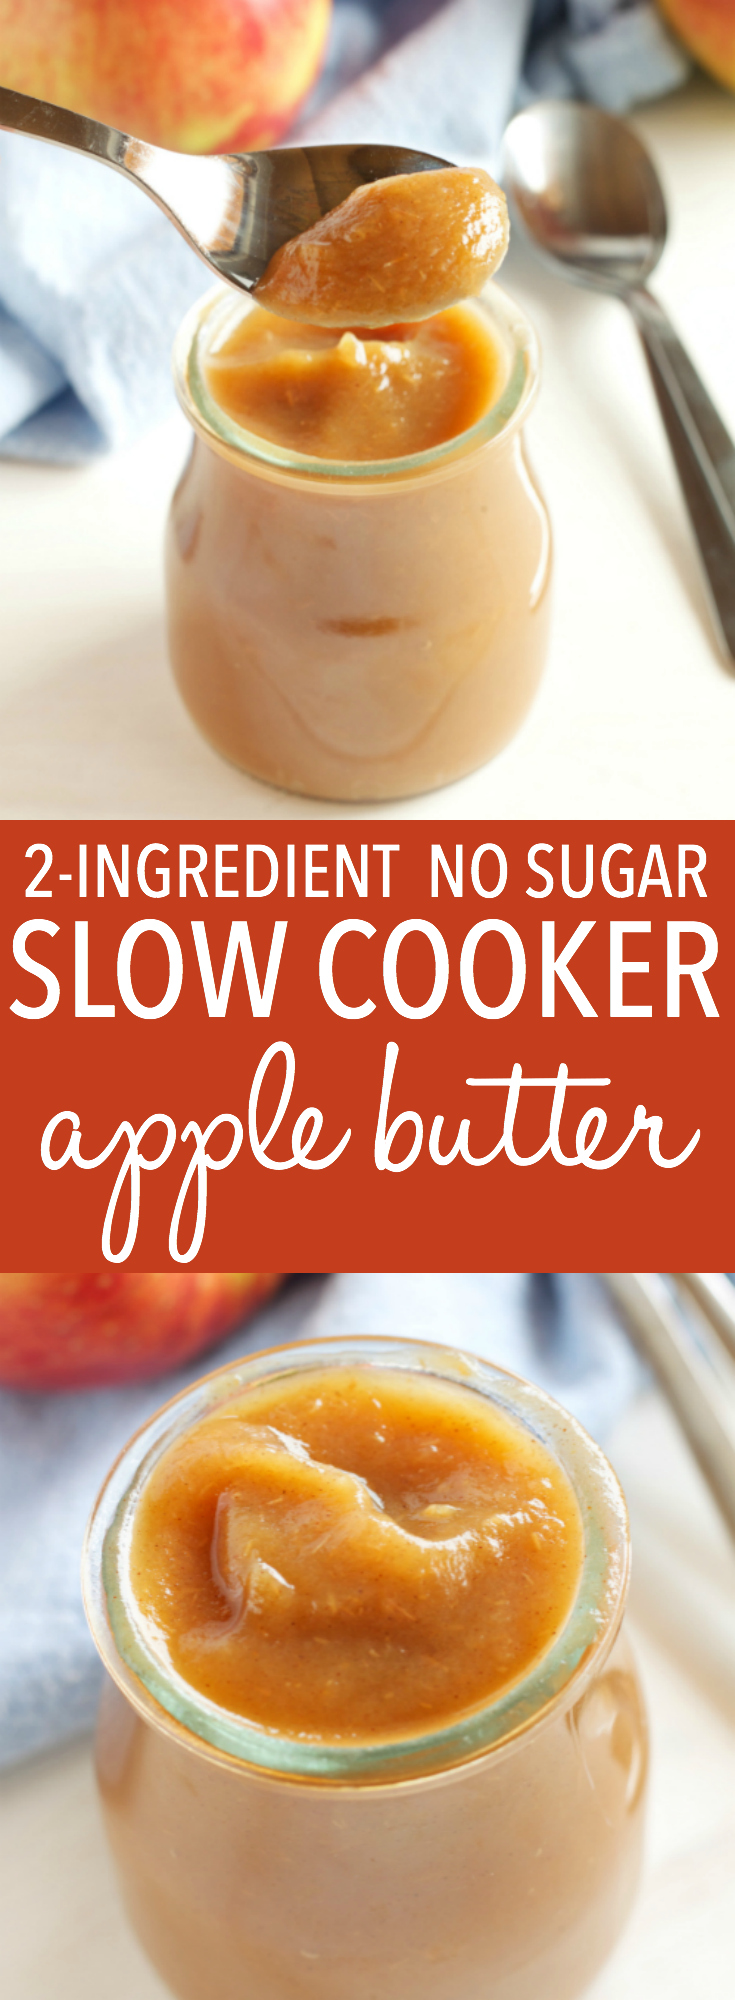 This Healthy 2 Ingredient Crock Pot Apple Butter is an easy fall recipe made with only apples and cinnamon, and no sugar! Perfect as a dip or spread! Recipe from thebusybaker.ca! via @busybakerblog